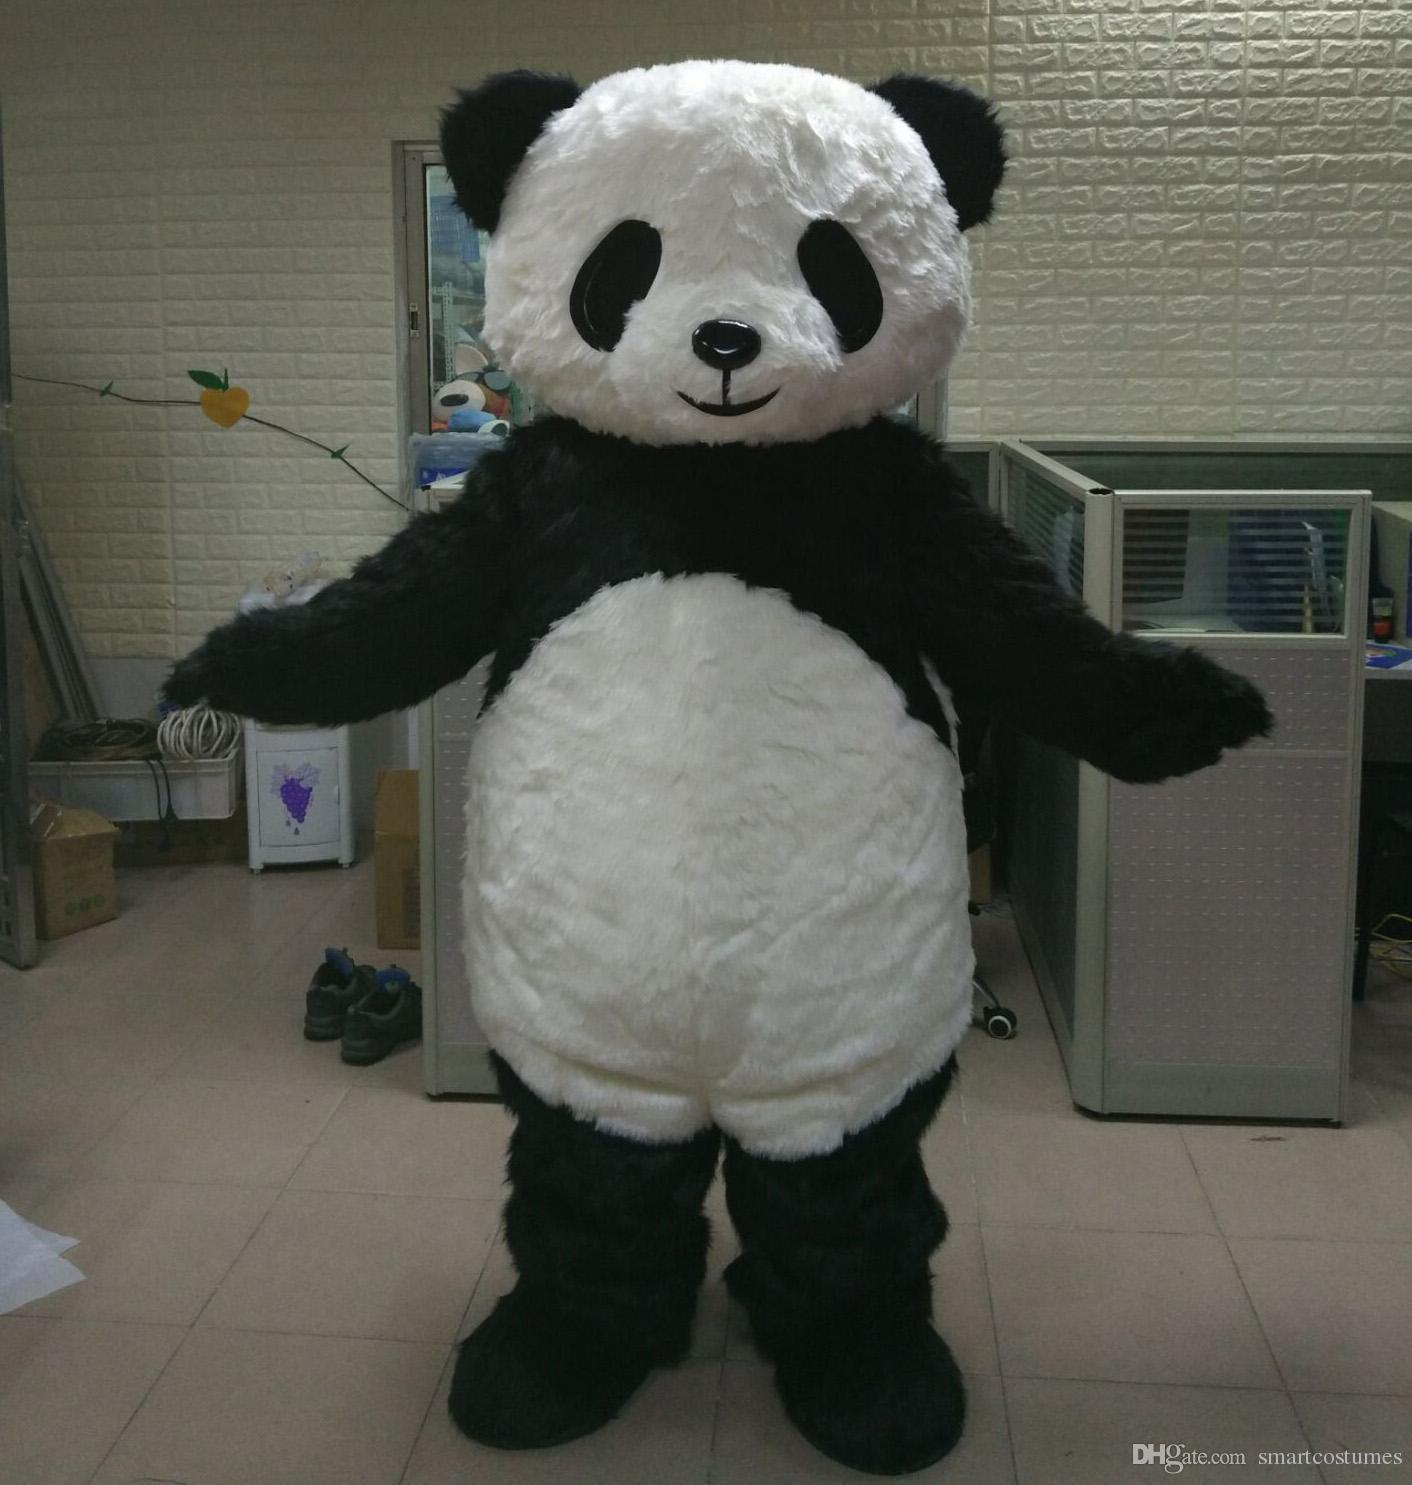 Brand New Big Fat Furry Panda Bear Mascot Costume For Adult Panda Mascot Suit For Sell Rocky Horror Picture Show Costumes Girl Costumes From Smartcostumes 293 41 Dhgate Com